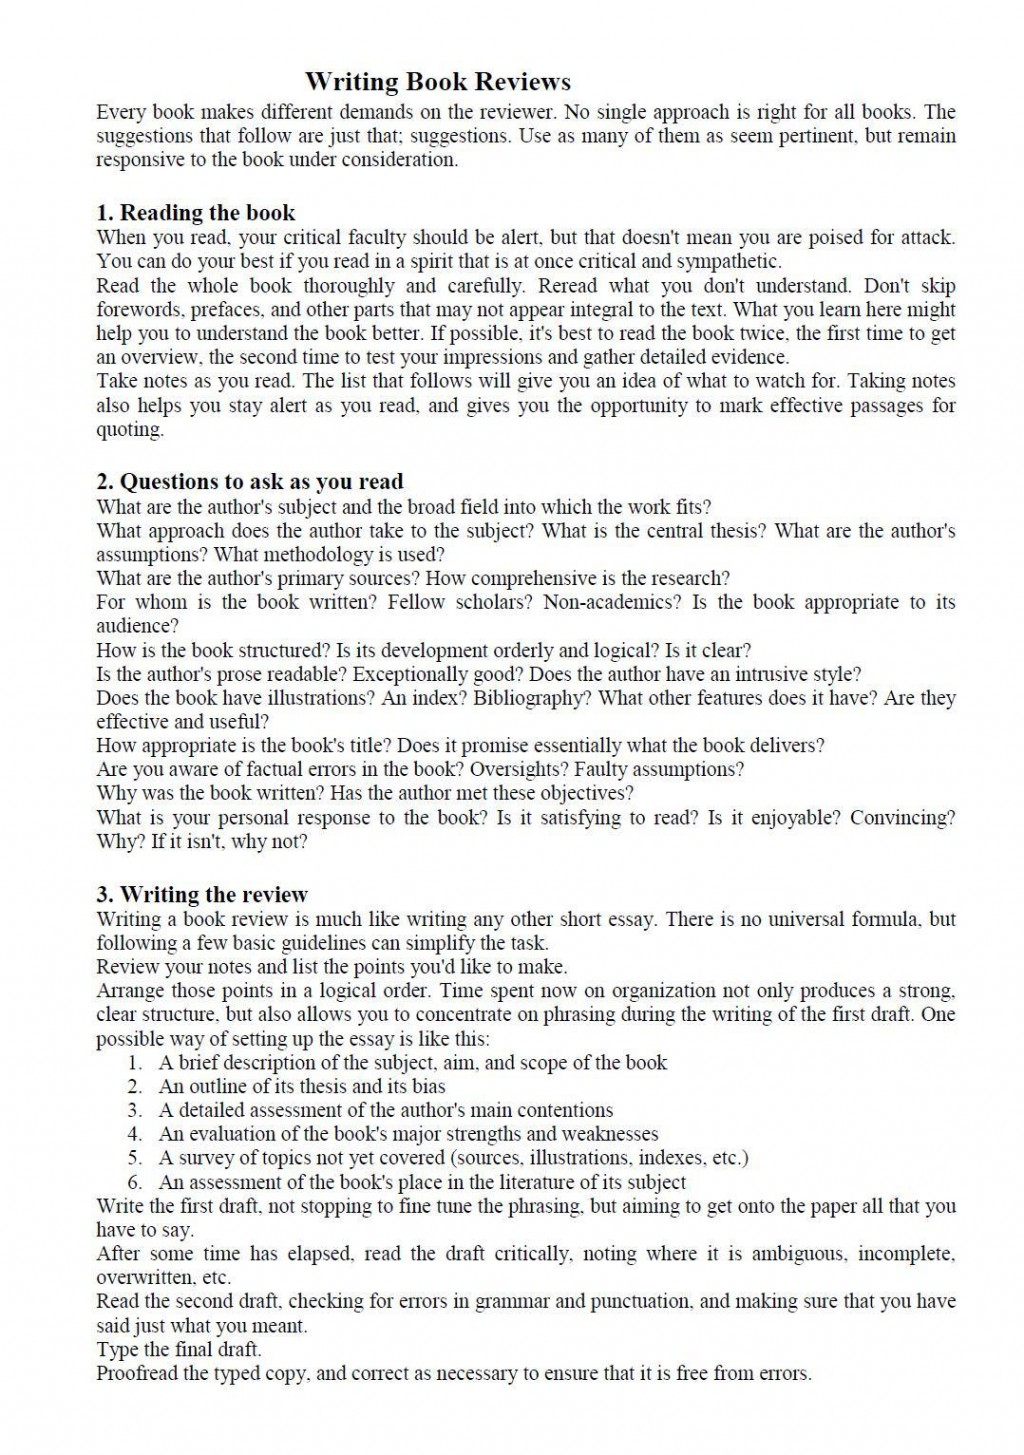 018 Essay Example Writing Reviews How Write Book Review Grab My College Application For Free Common App Can Someone Peer And Correct It Surprising Discount Large